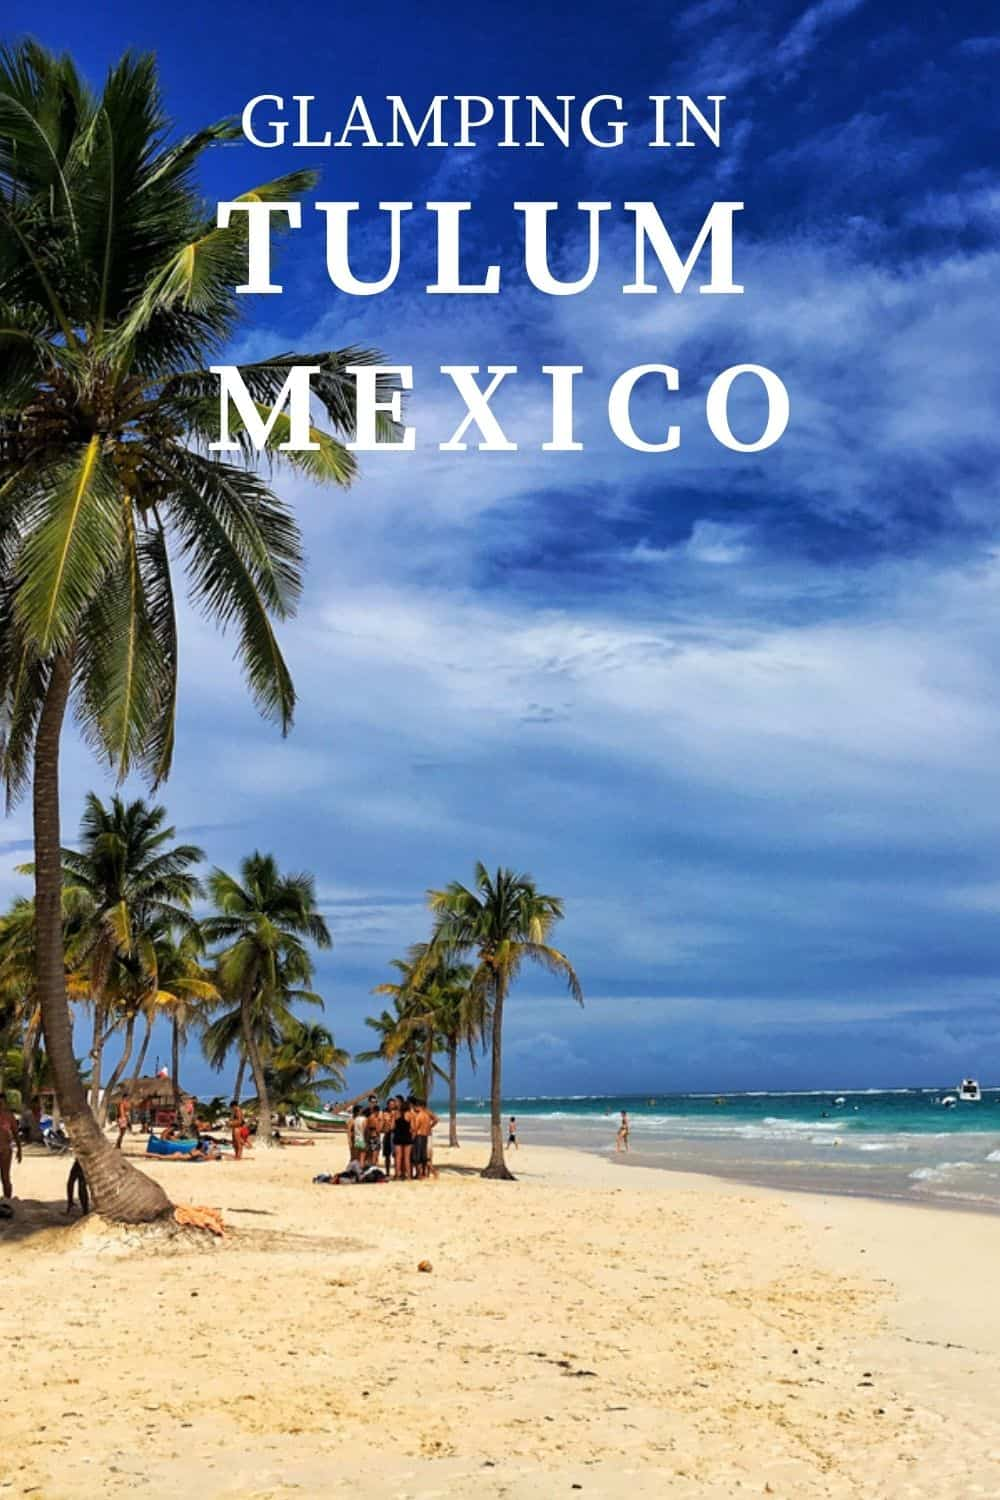 Glamping in Tulum Mexico